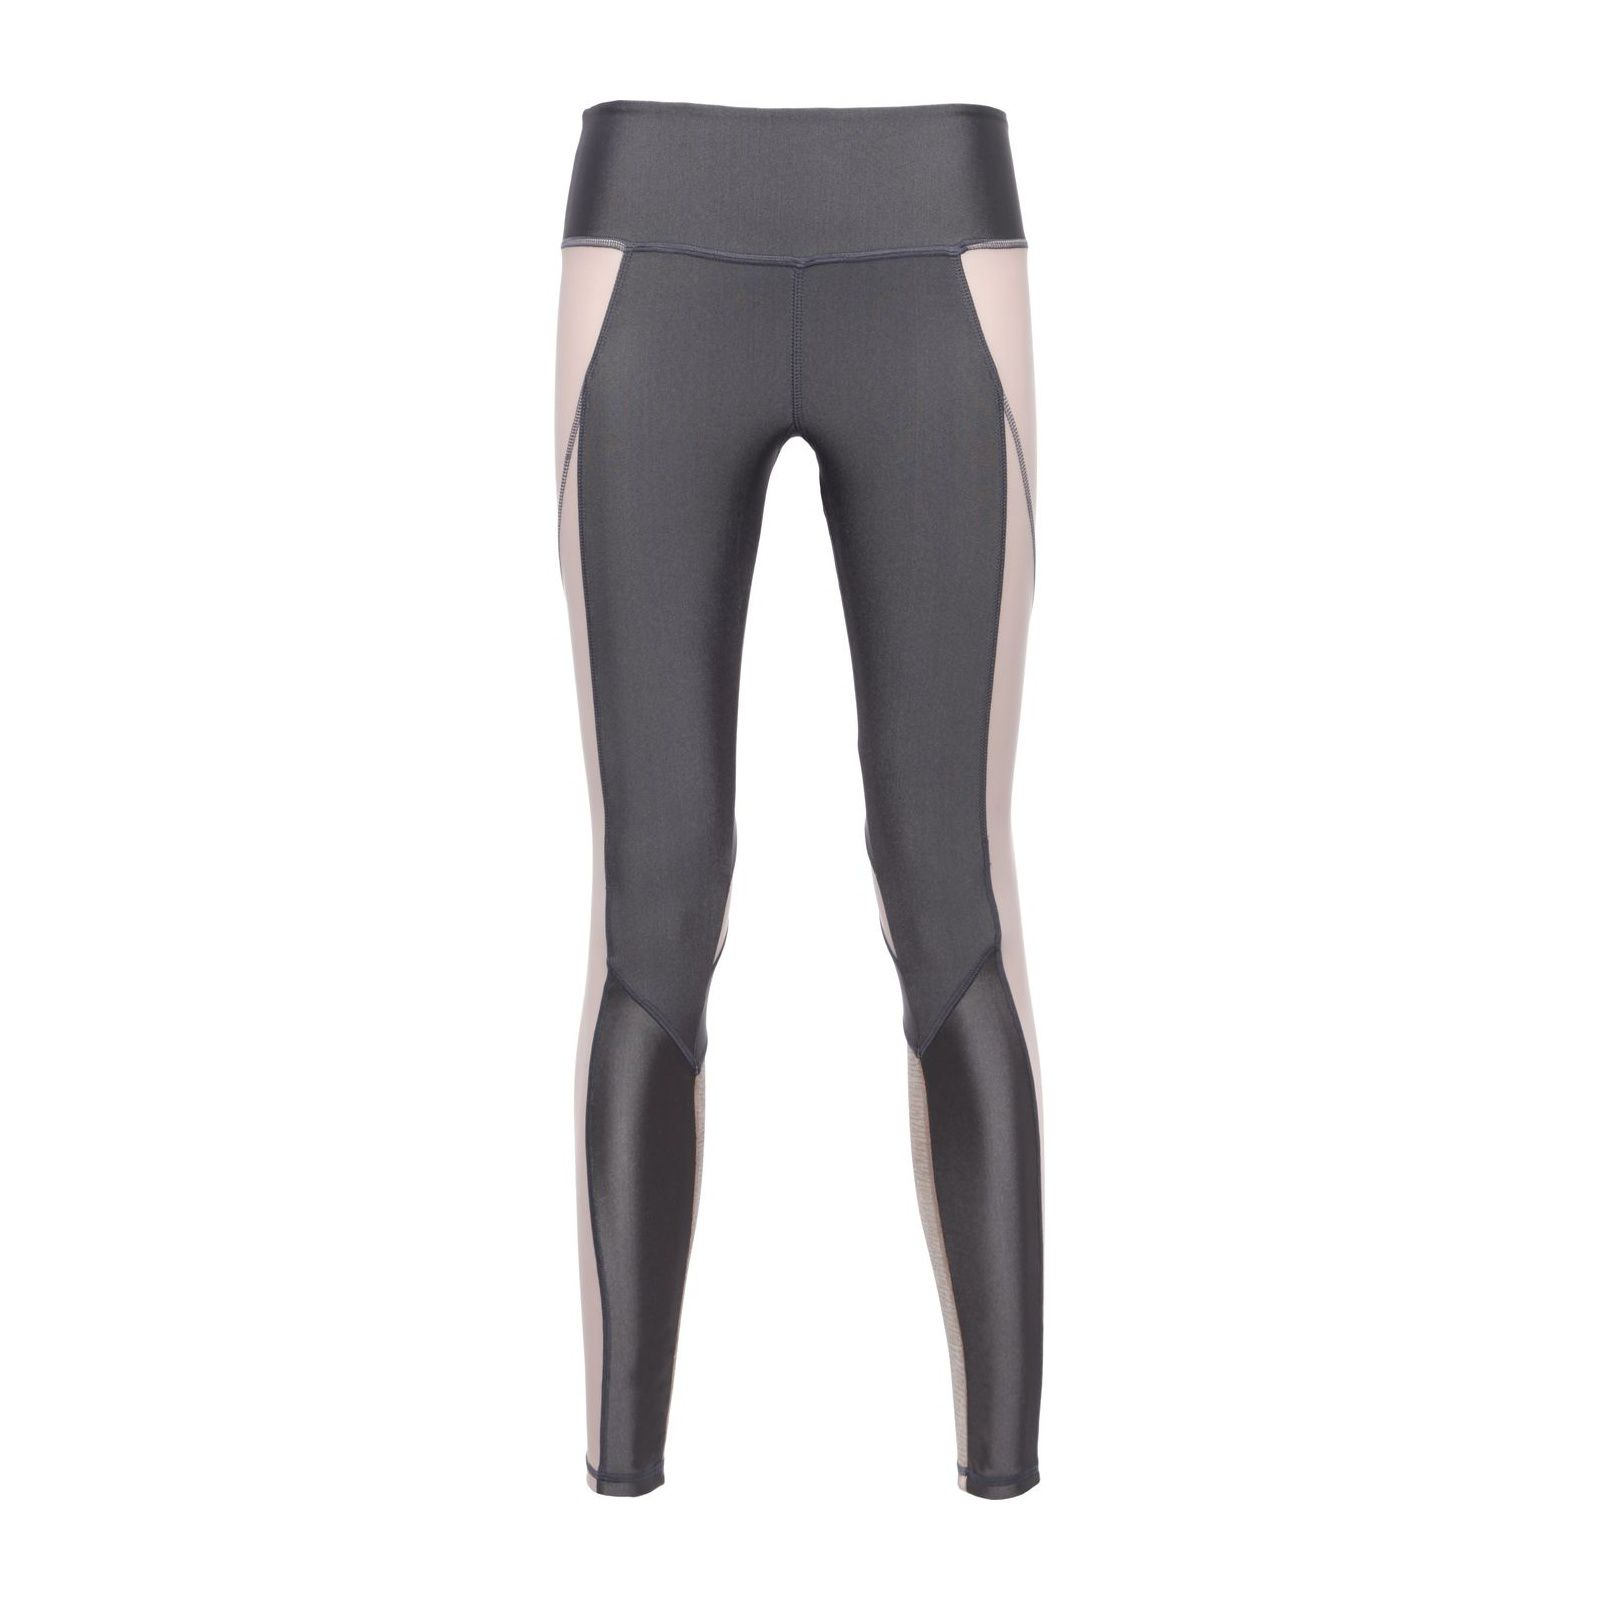 Calça Legging Splendid We Fit By Nati Vozza - Cinza